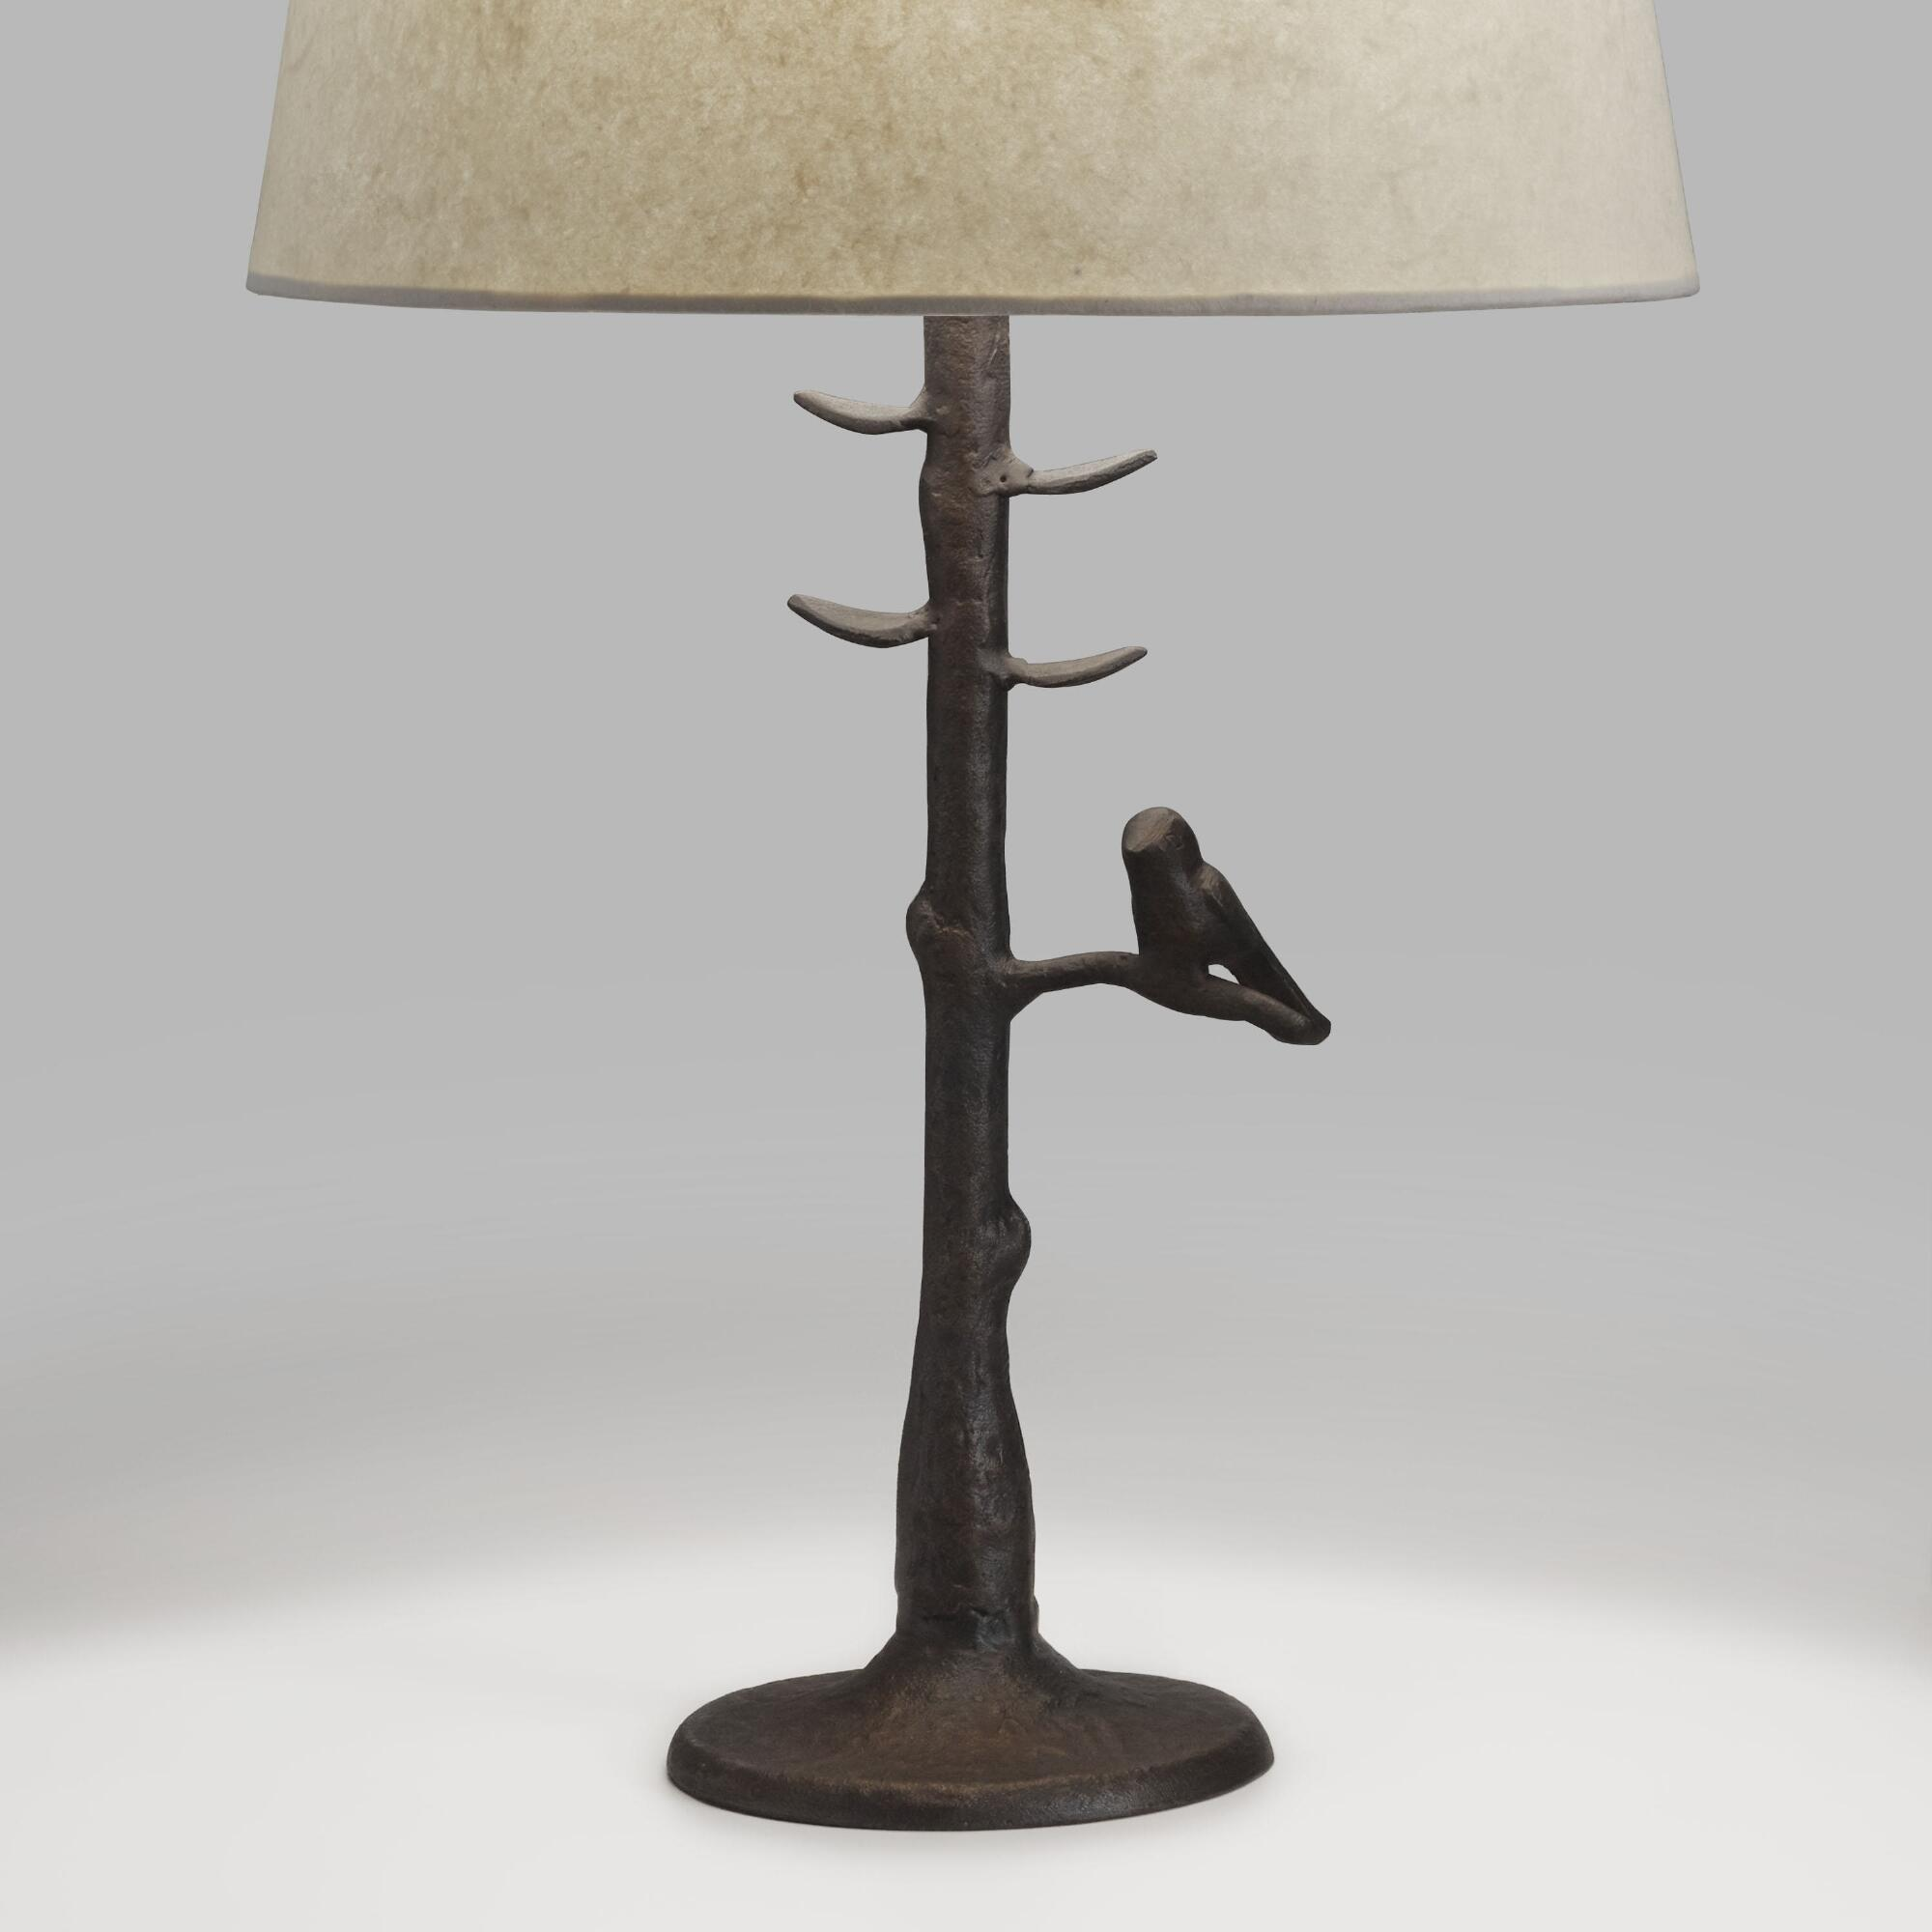 Woodlands table lamp base world market for Floor lamp stand online india